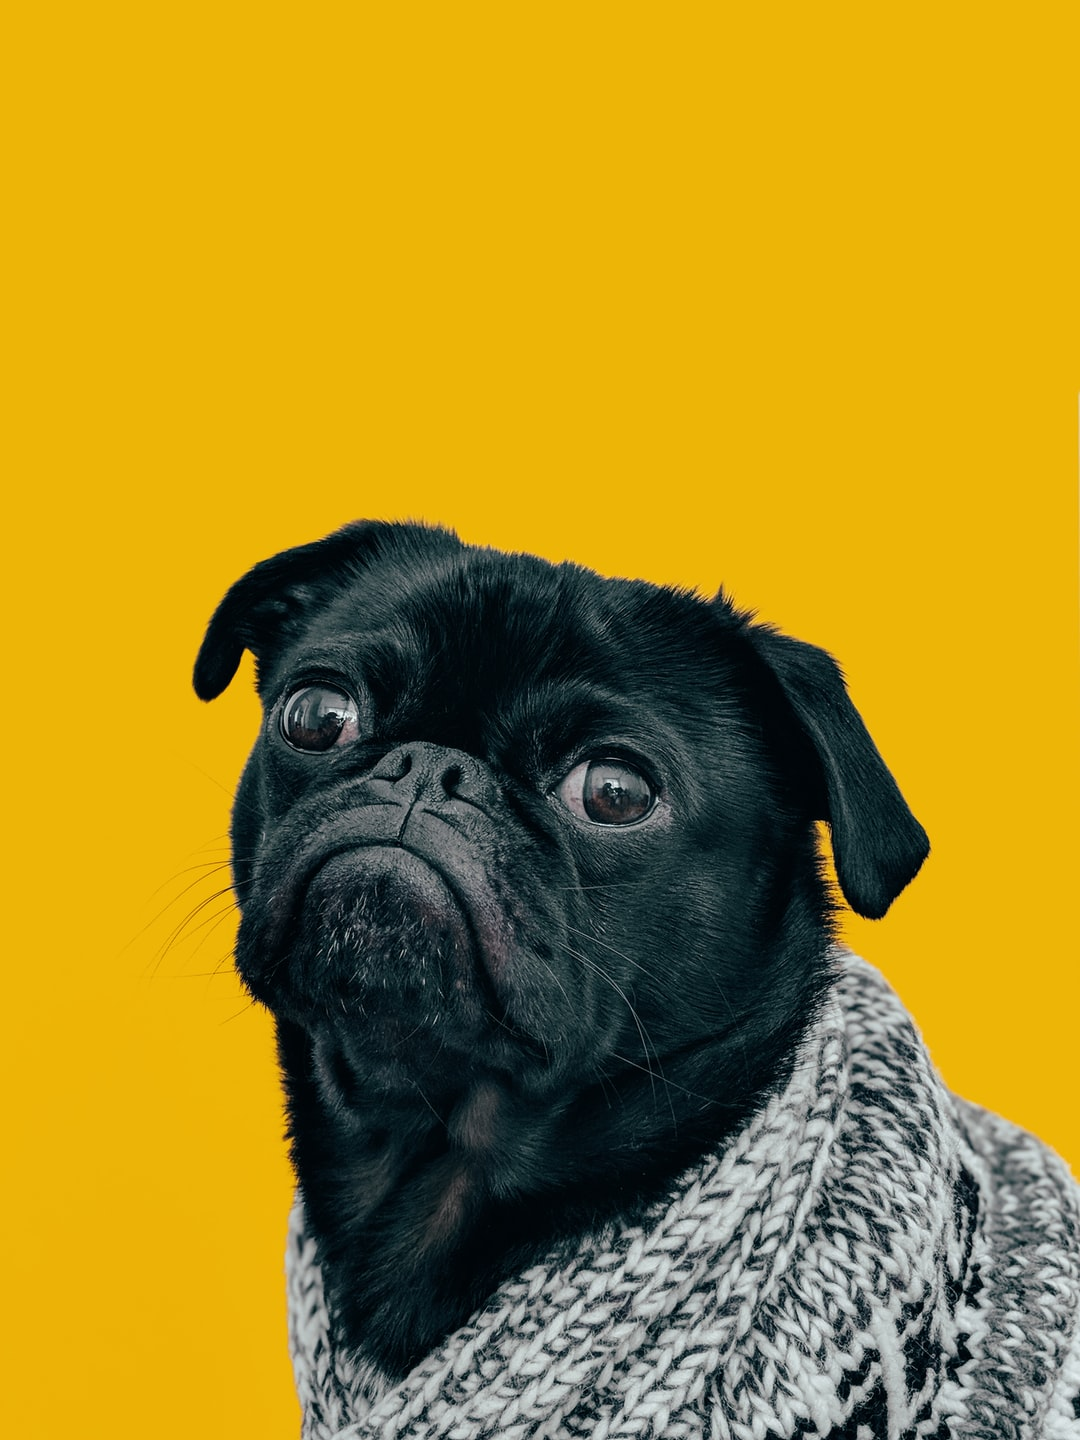 Funny Animals Pictures   Download Free Images on Unsplash